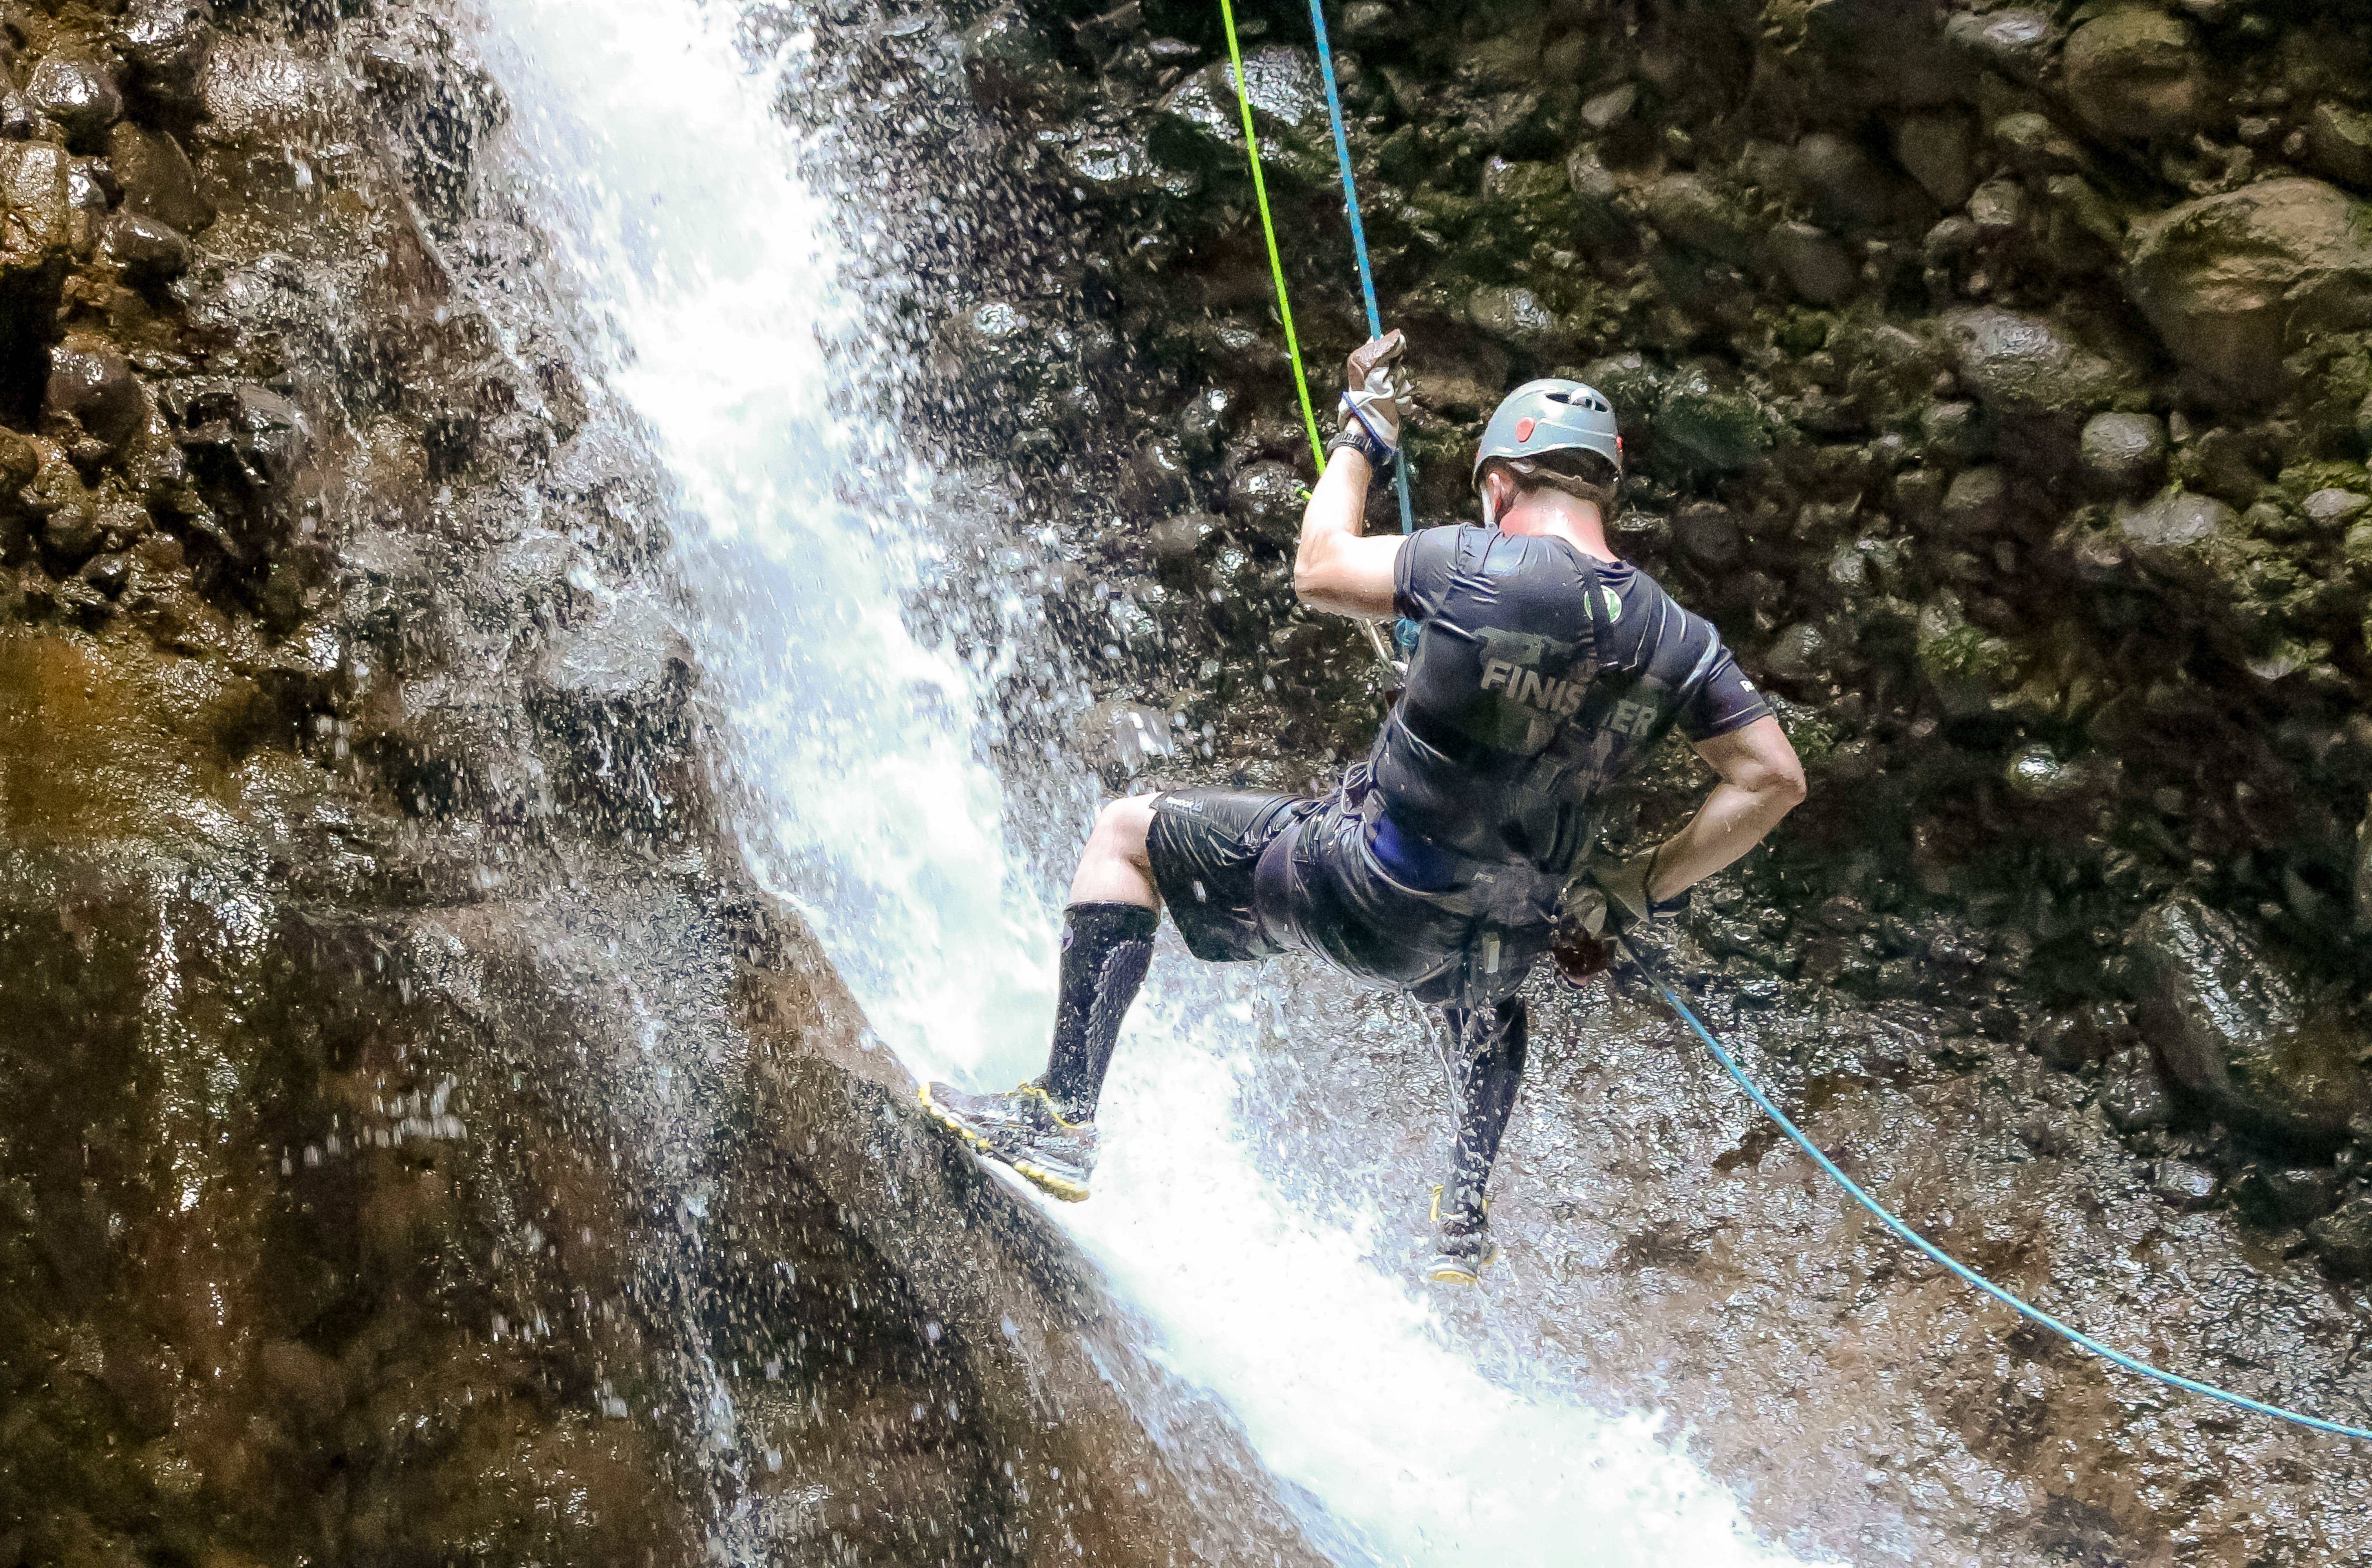 Rappelling down a waterfall.